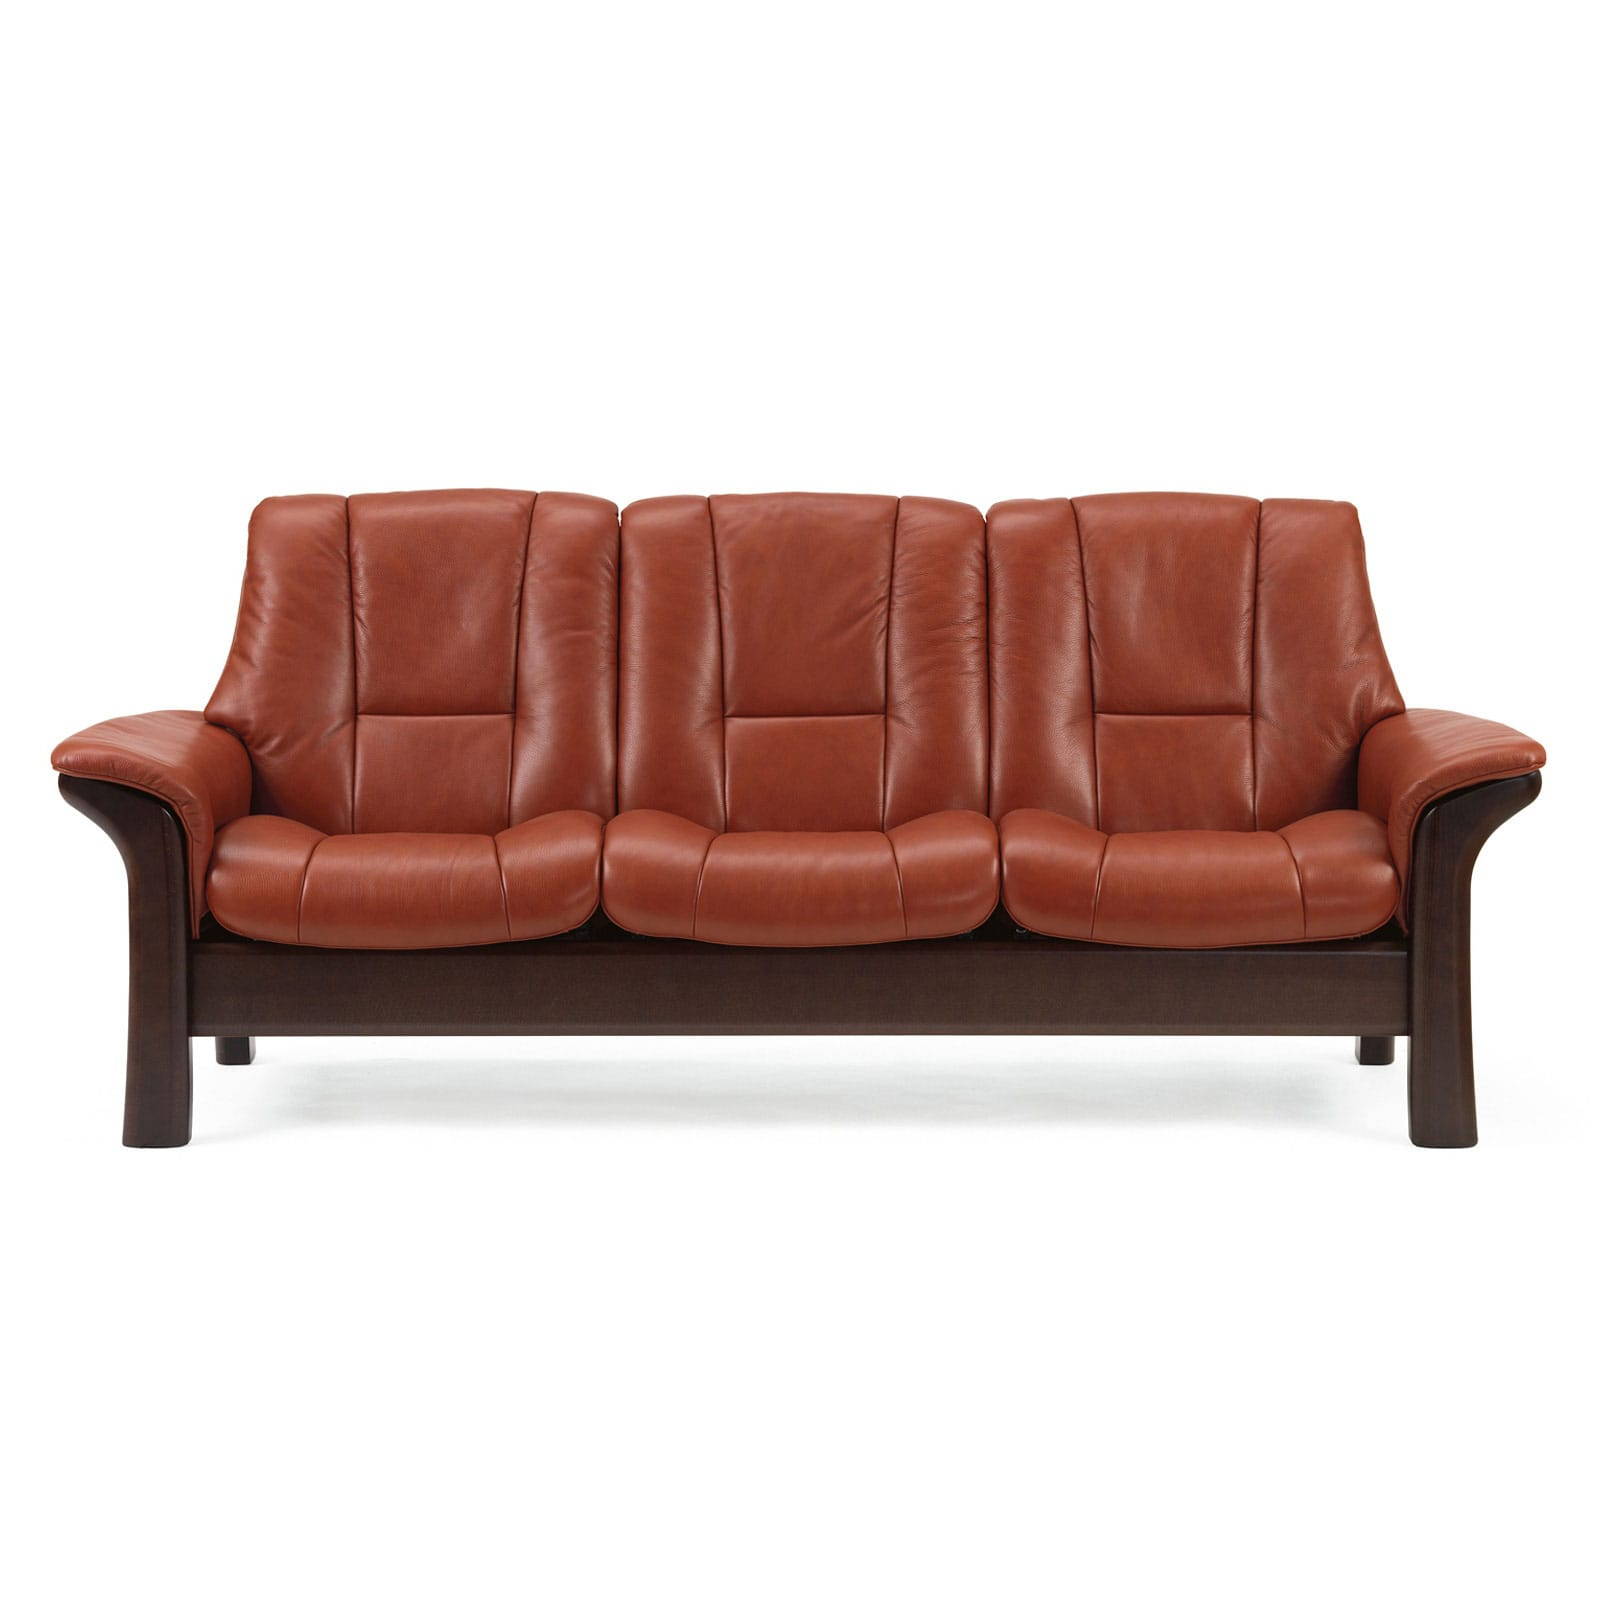 Stressless sofa 3 sitzer windsor m niedrig paloma copper for 3 on a couch